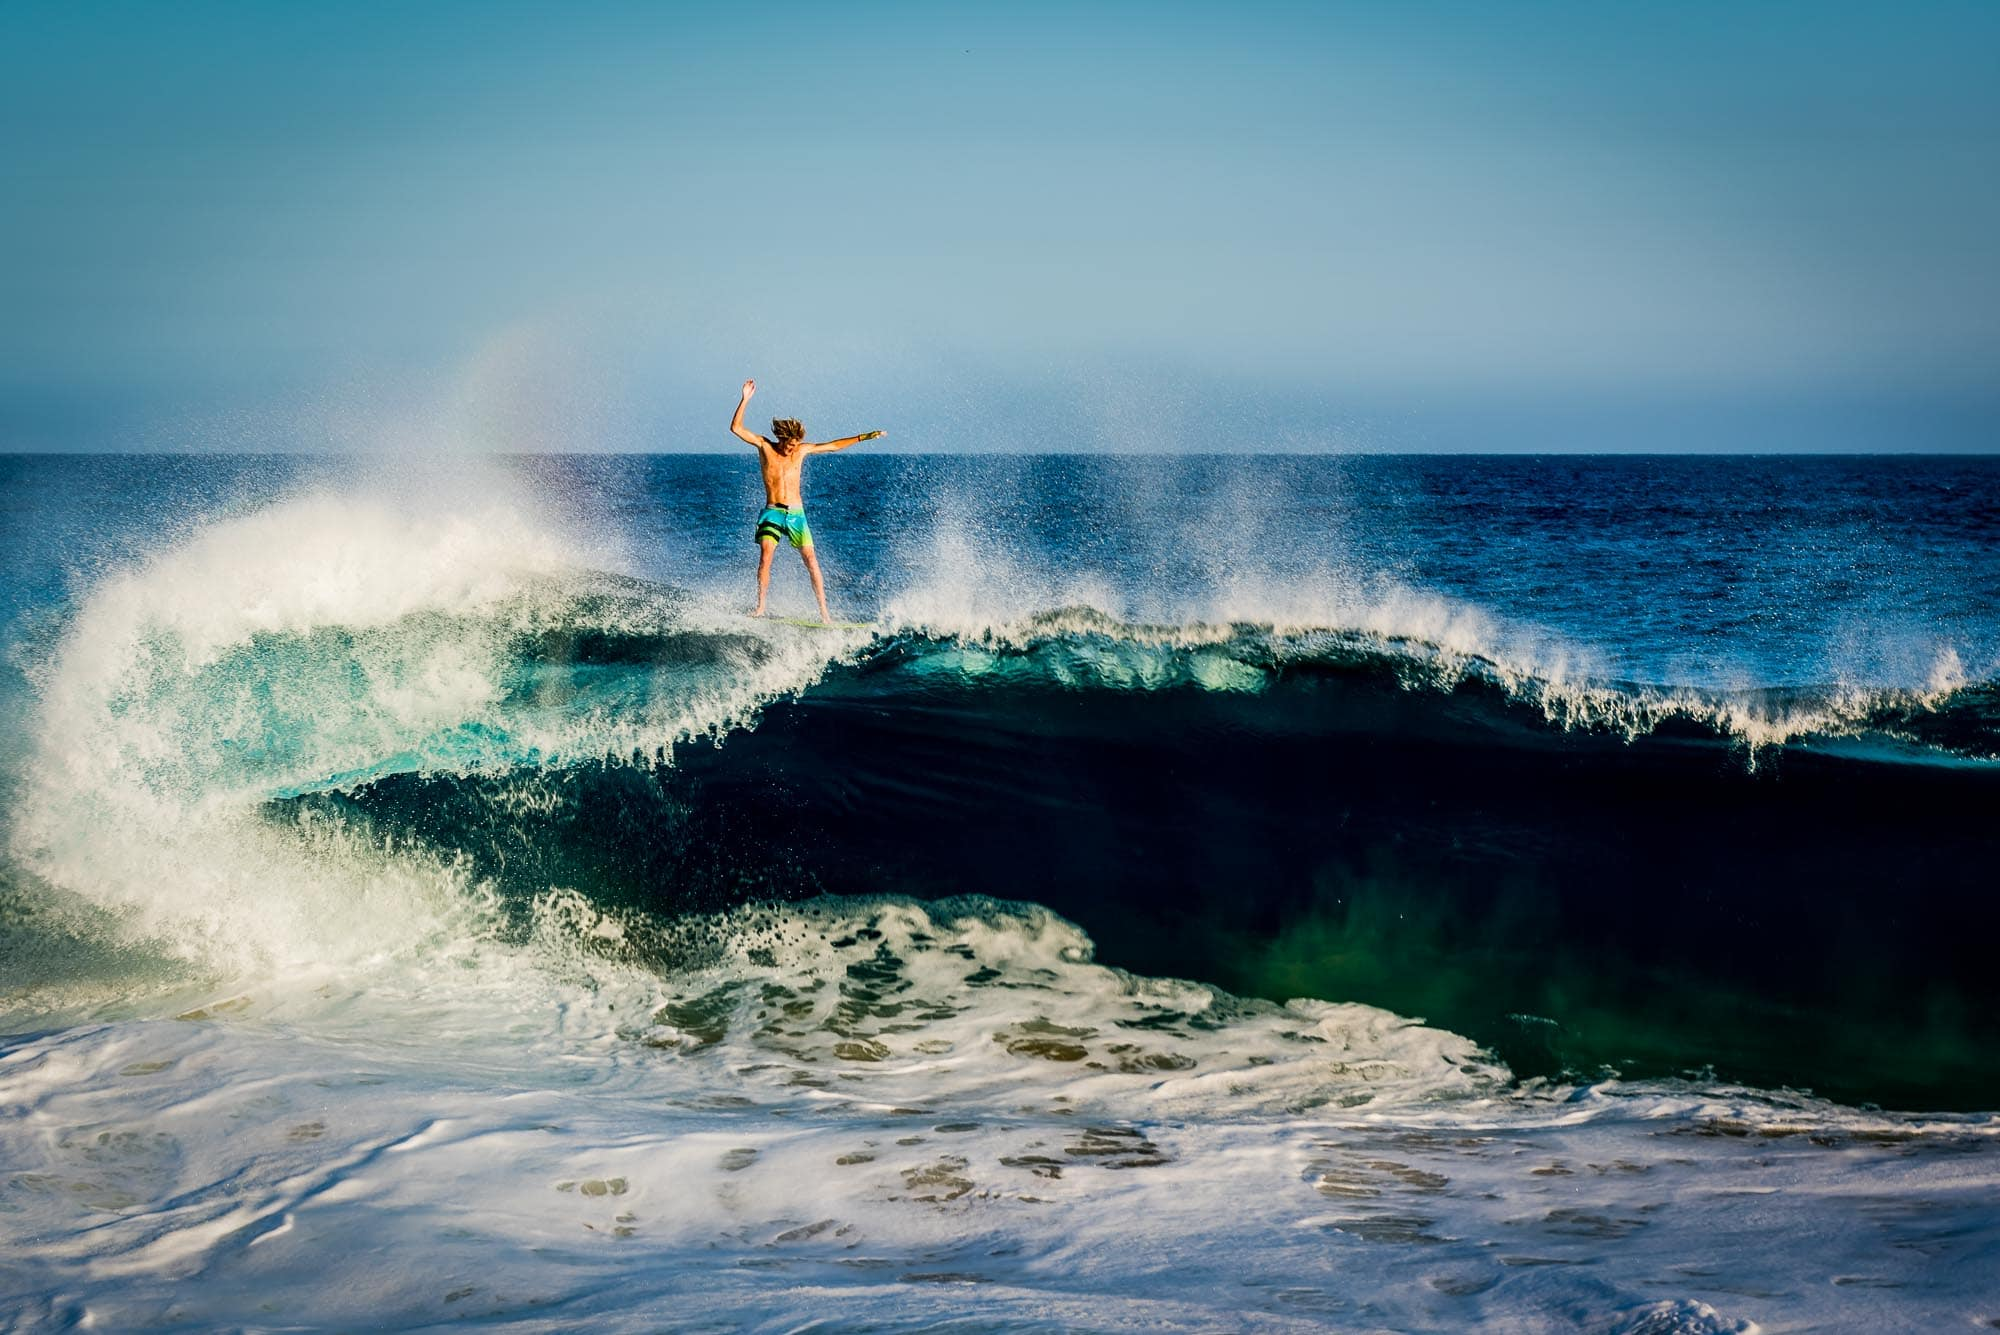 Savage of JoogSquad riding the top of an huge wave on his skimboard at Land's End in Cabo San Lucas